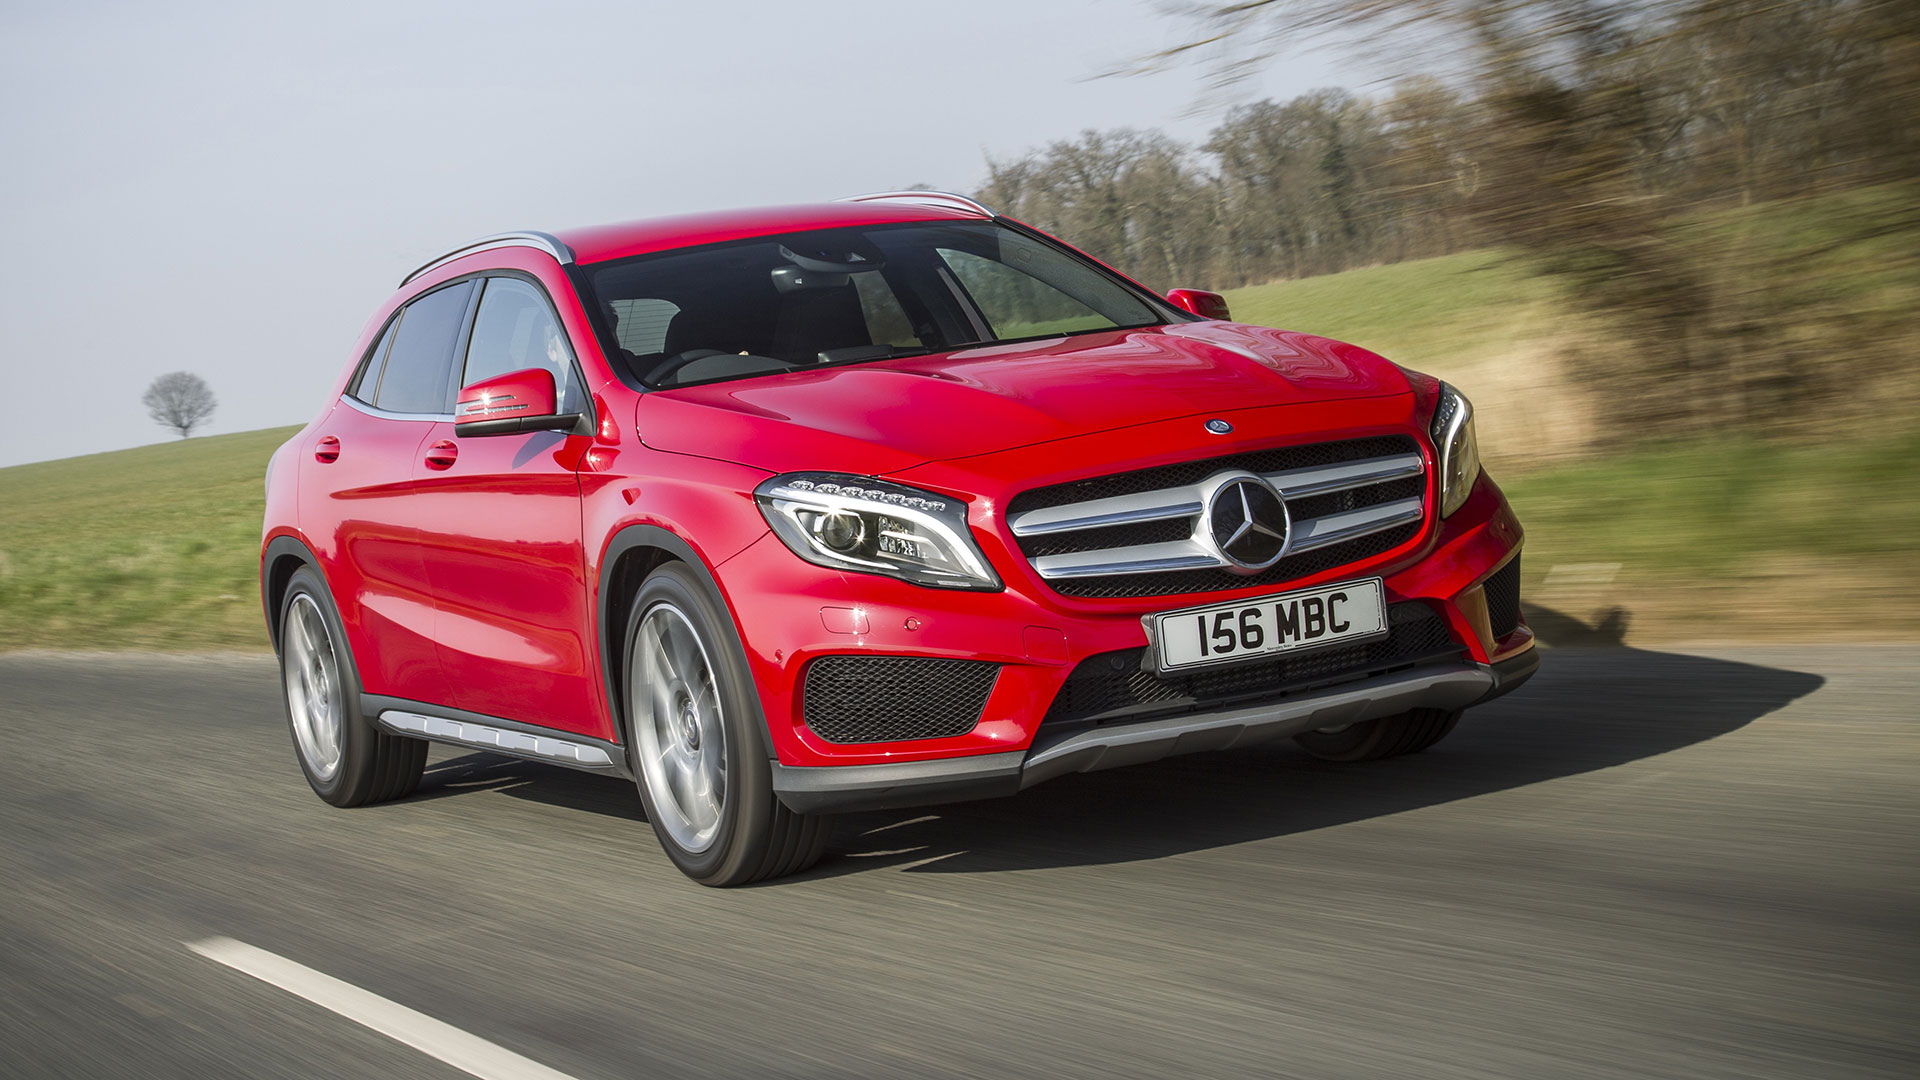 Used mercedes benz gla class cars for sale on auto trader uk for Mercedes benz used gla